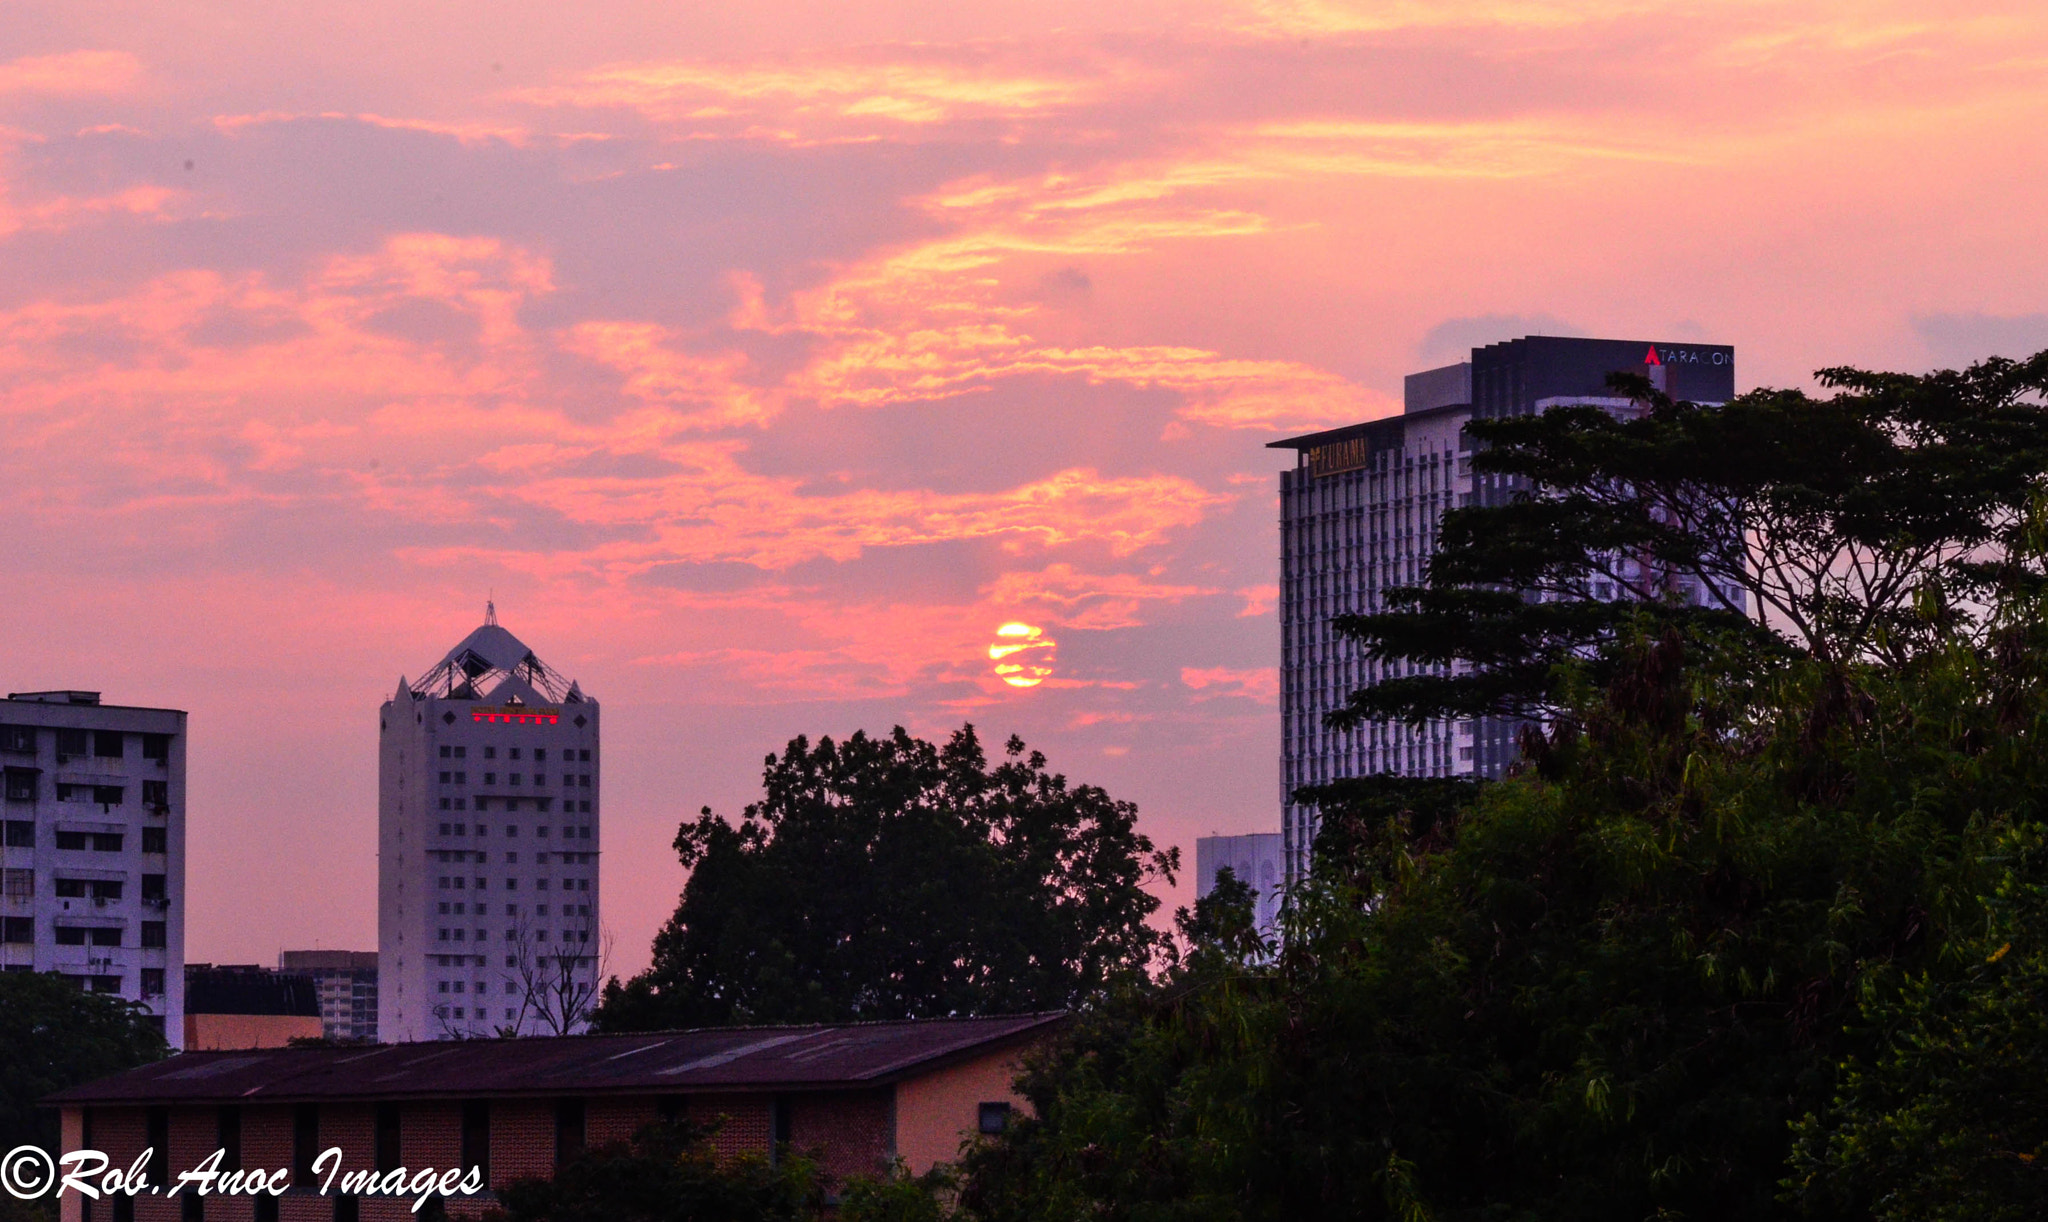 Photograph city sunset by ROBERT JR ANOC on 500px